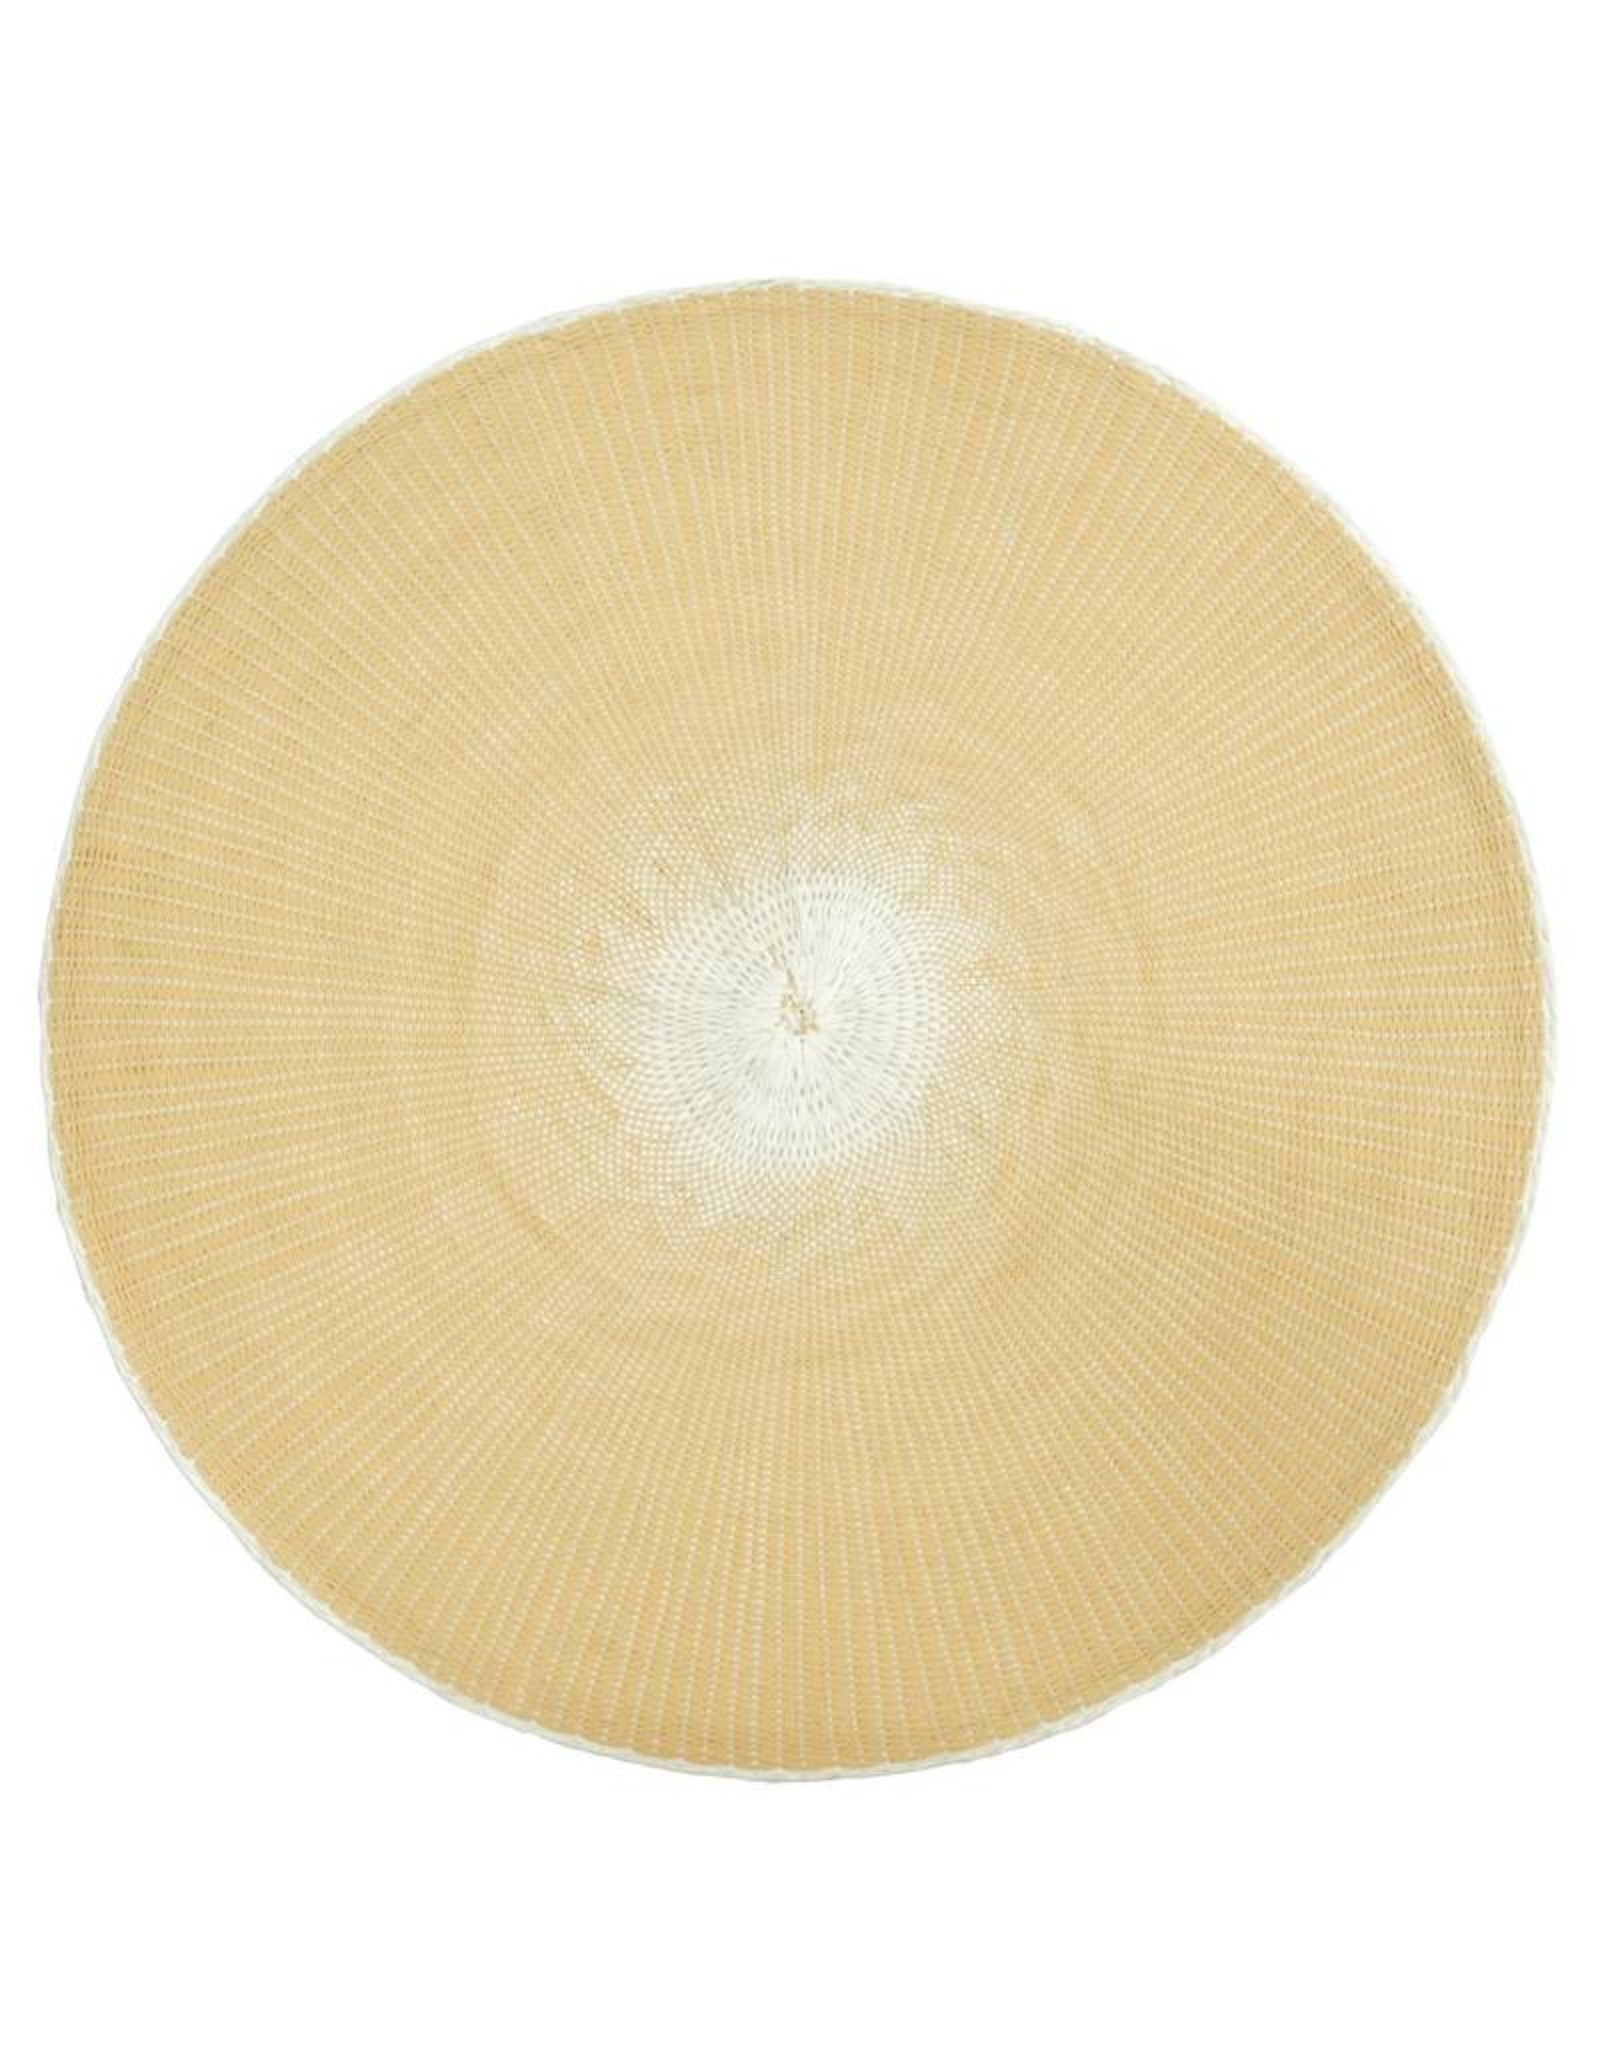 Indaba Willa Placemat - Off White